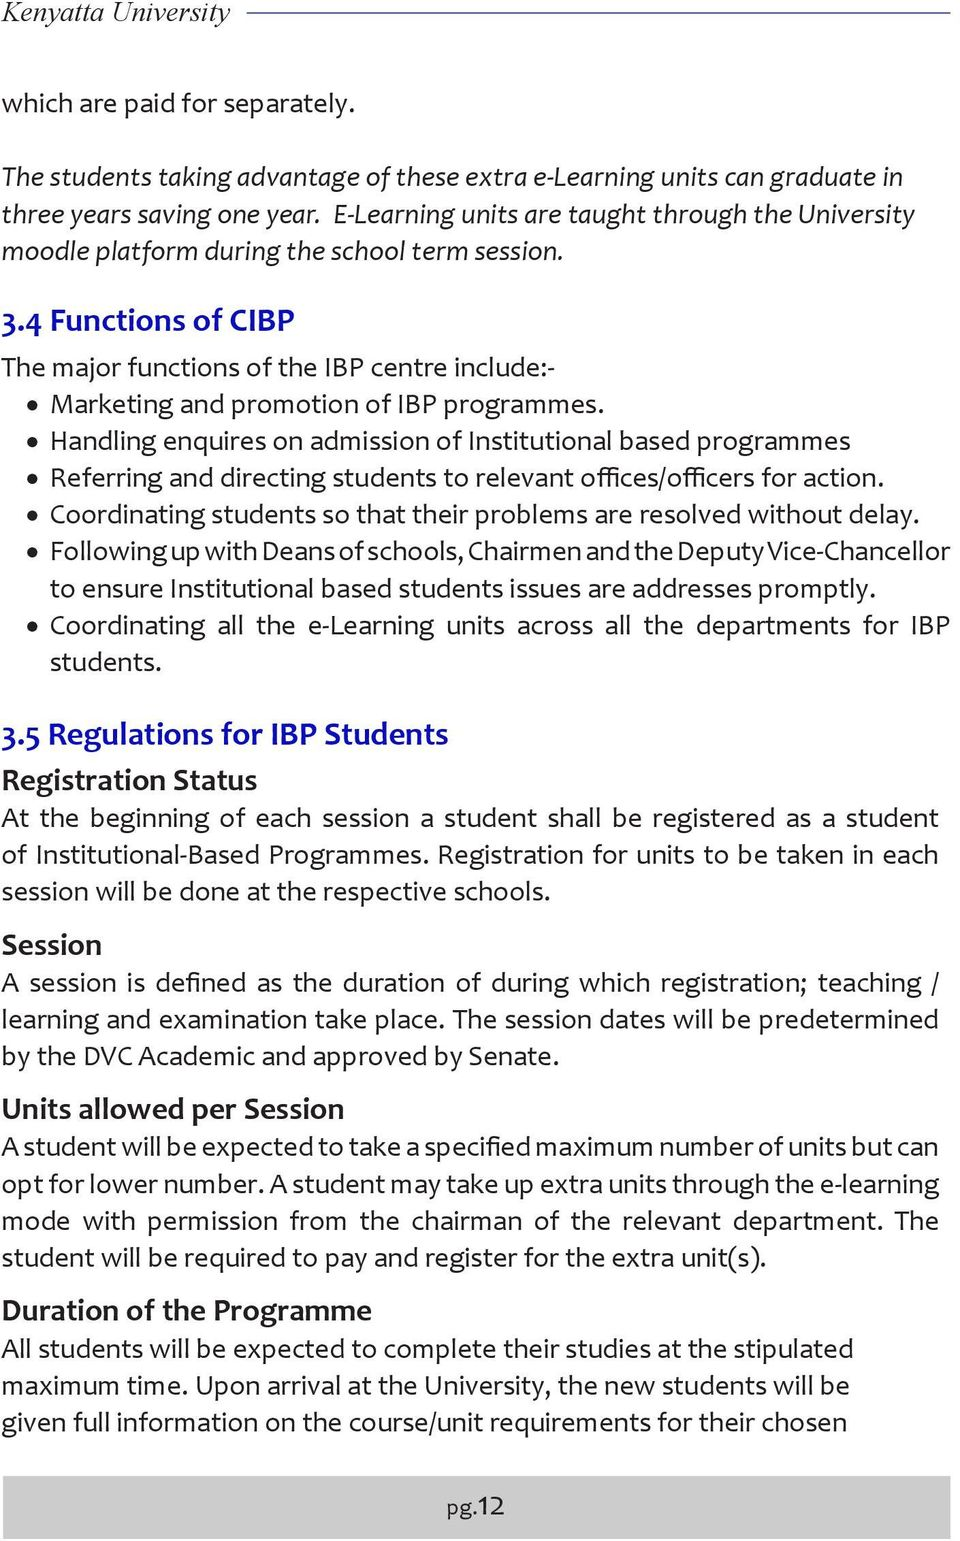 4 Functions of CIBP The major functions of the IBP centre include:- Marketing and promotion of IBP programmes.